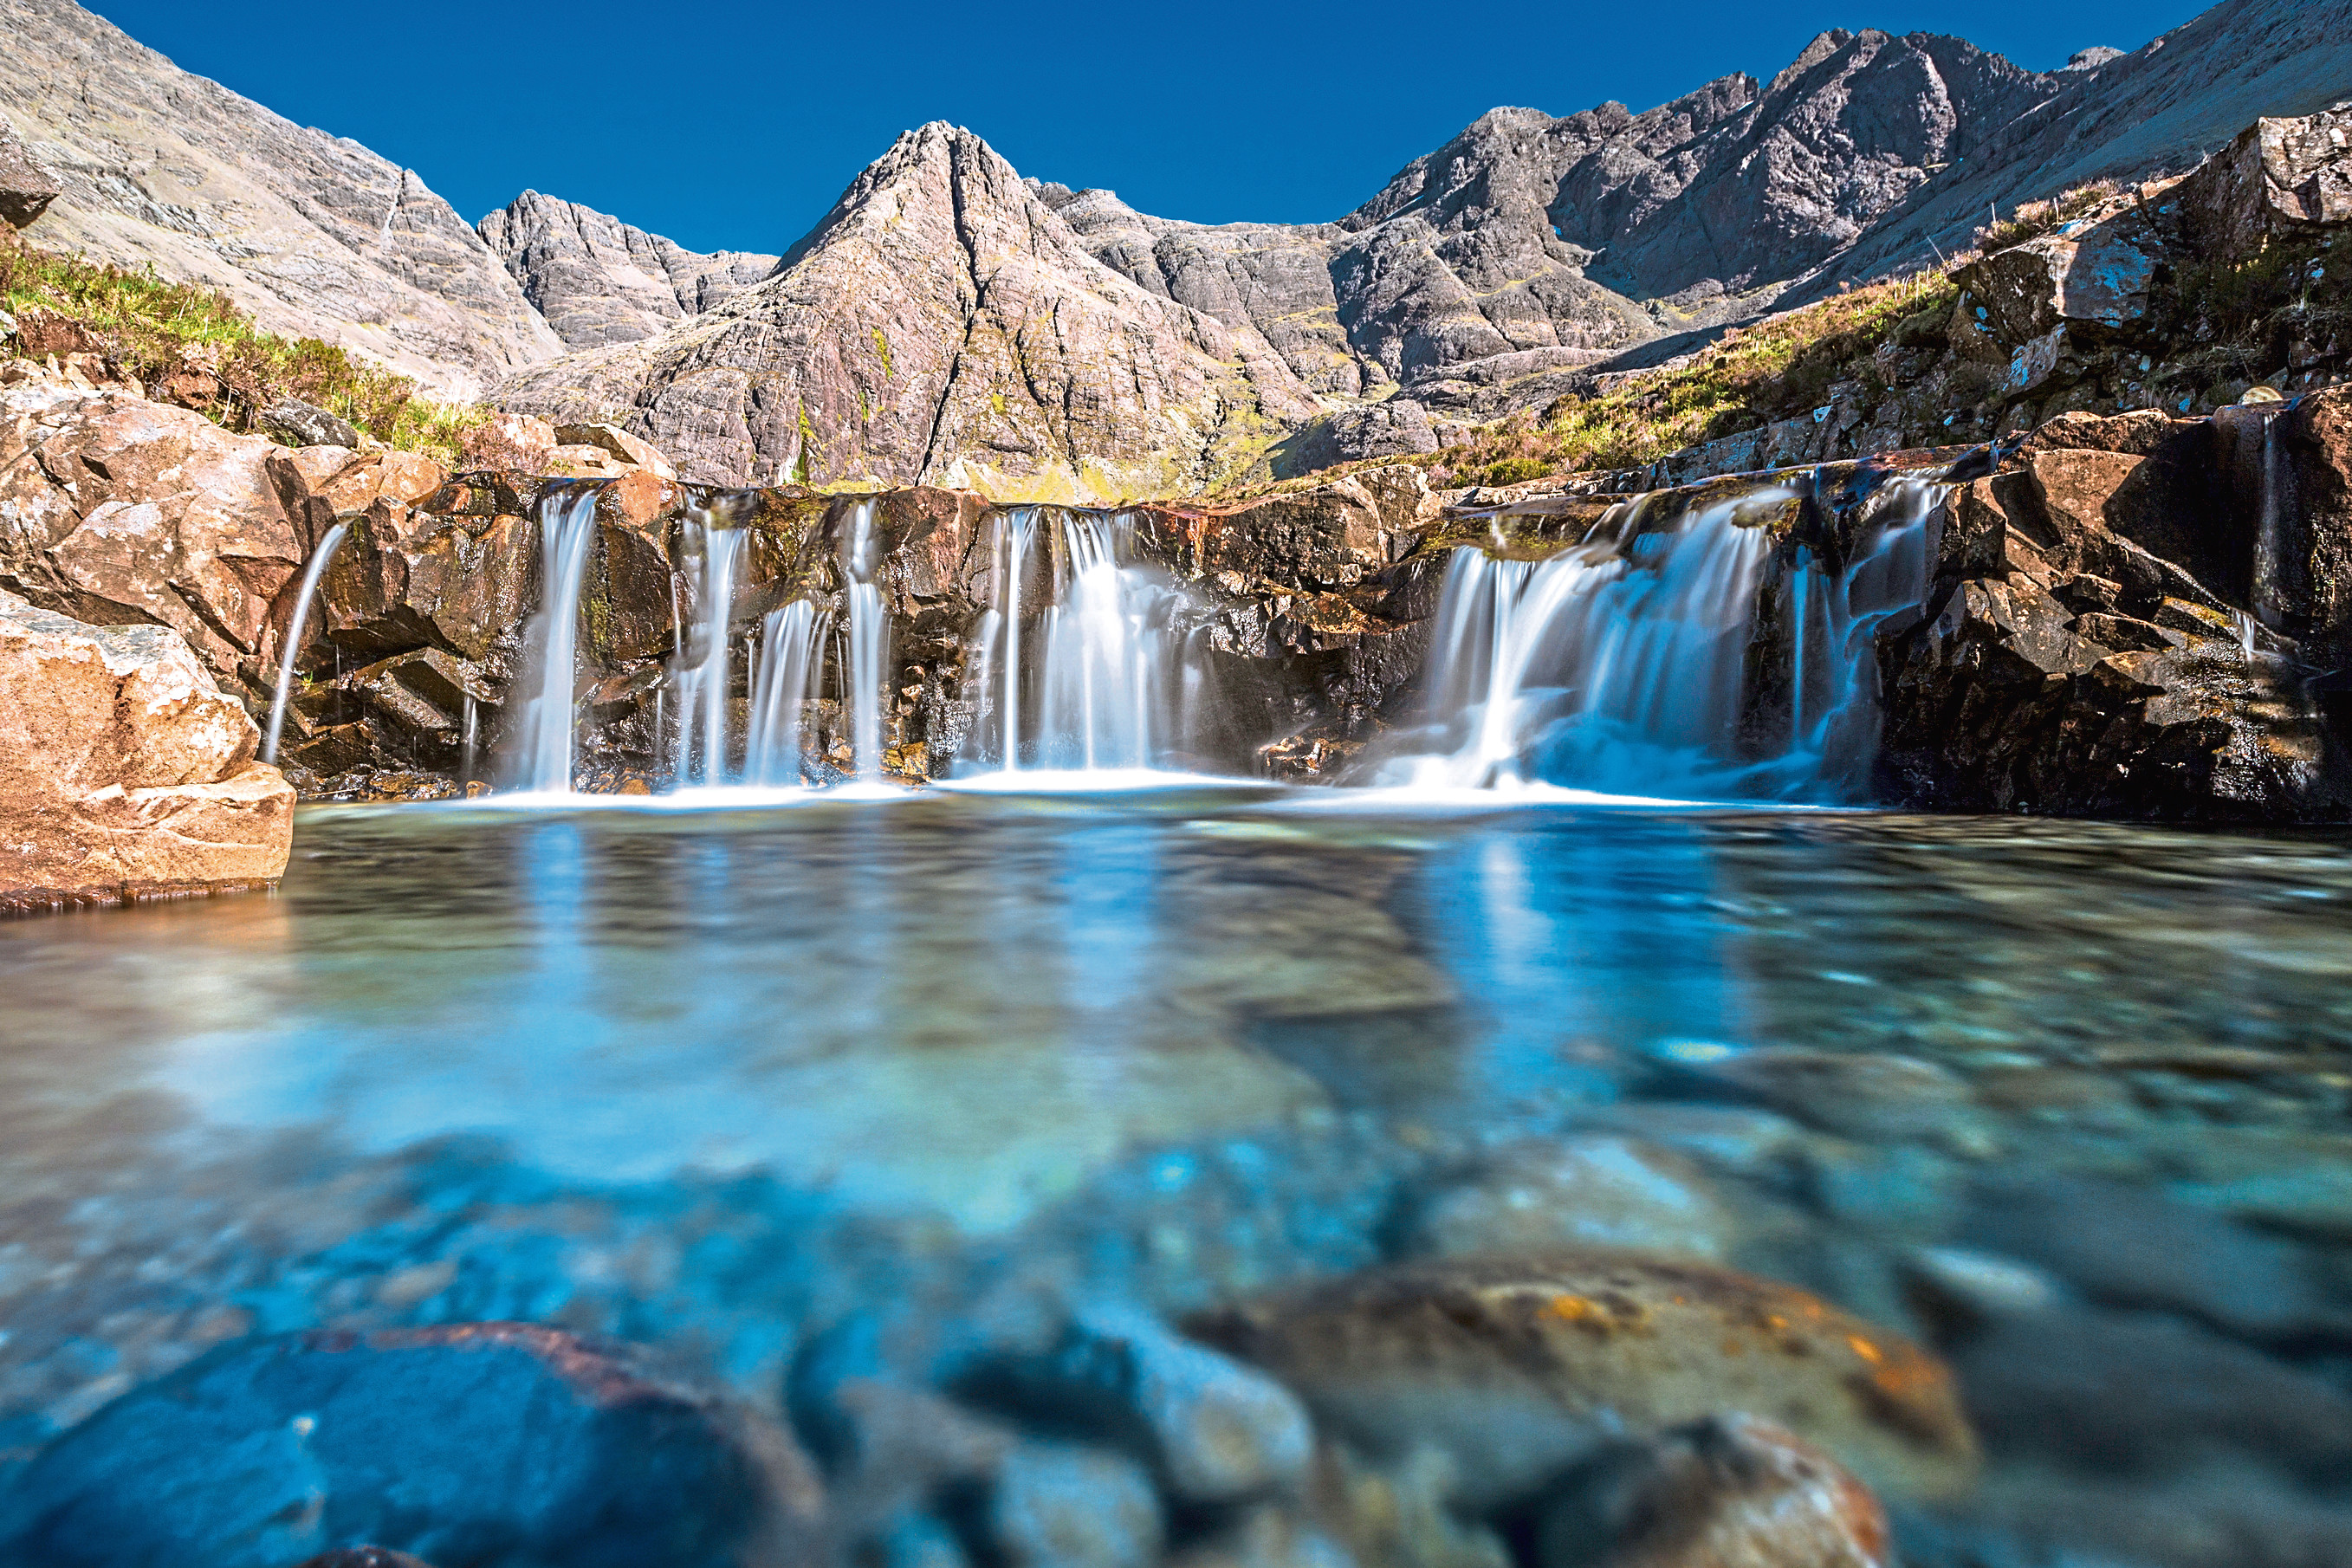 fav Turquoise pools, also called Fairy Pools,  in Isle of Skye, Scotland.